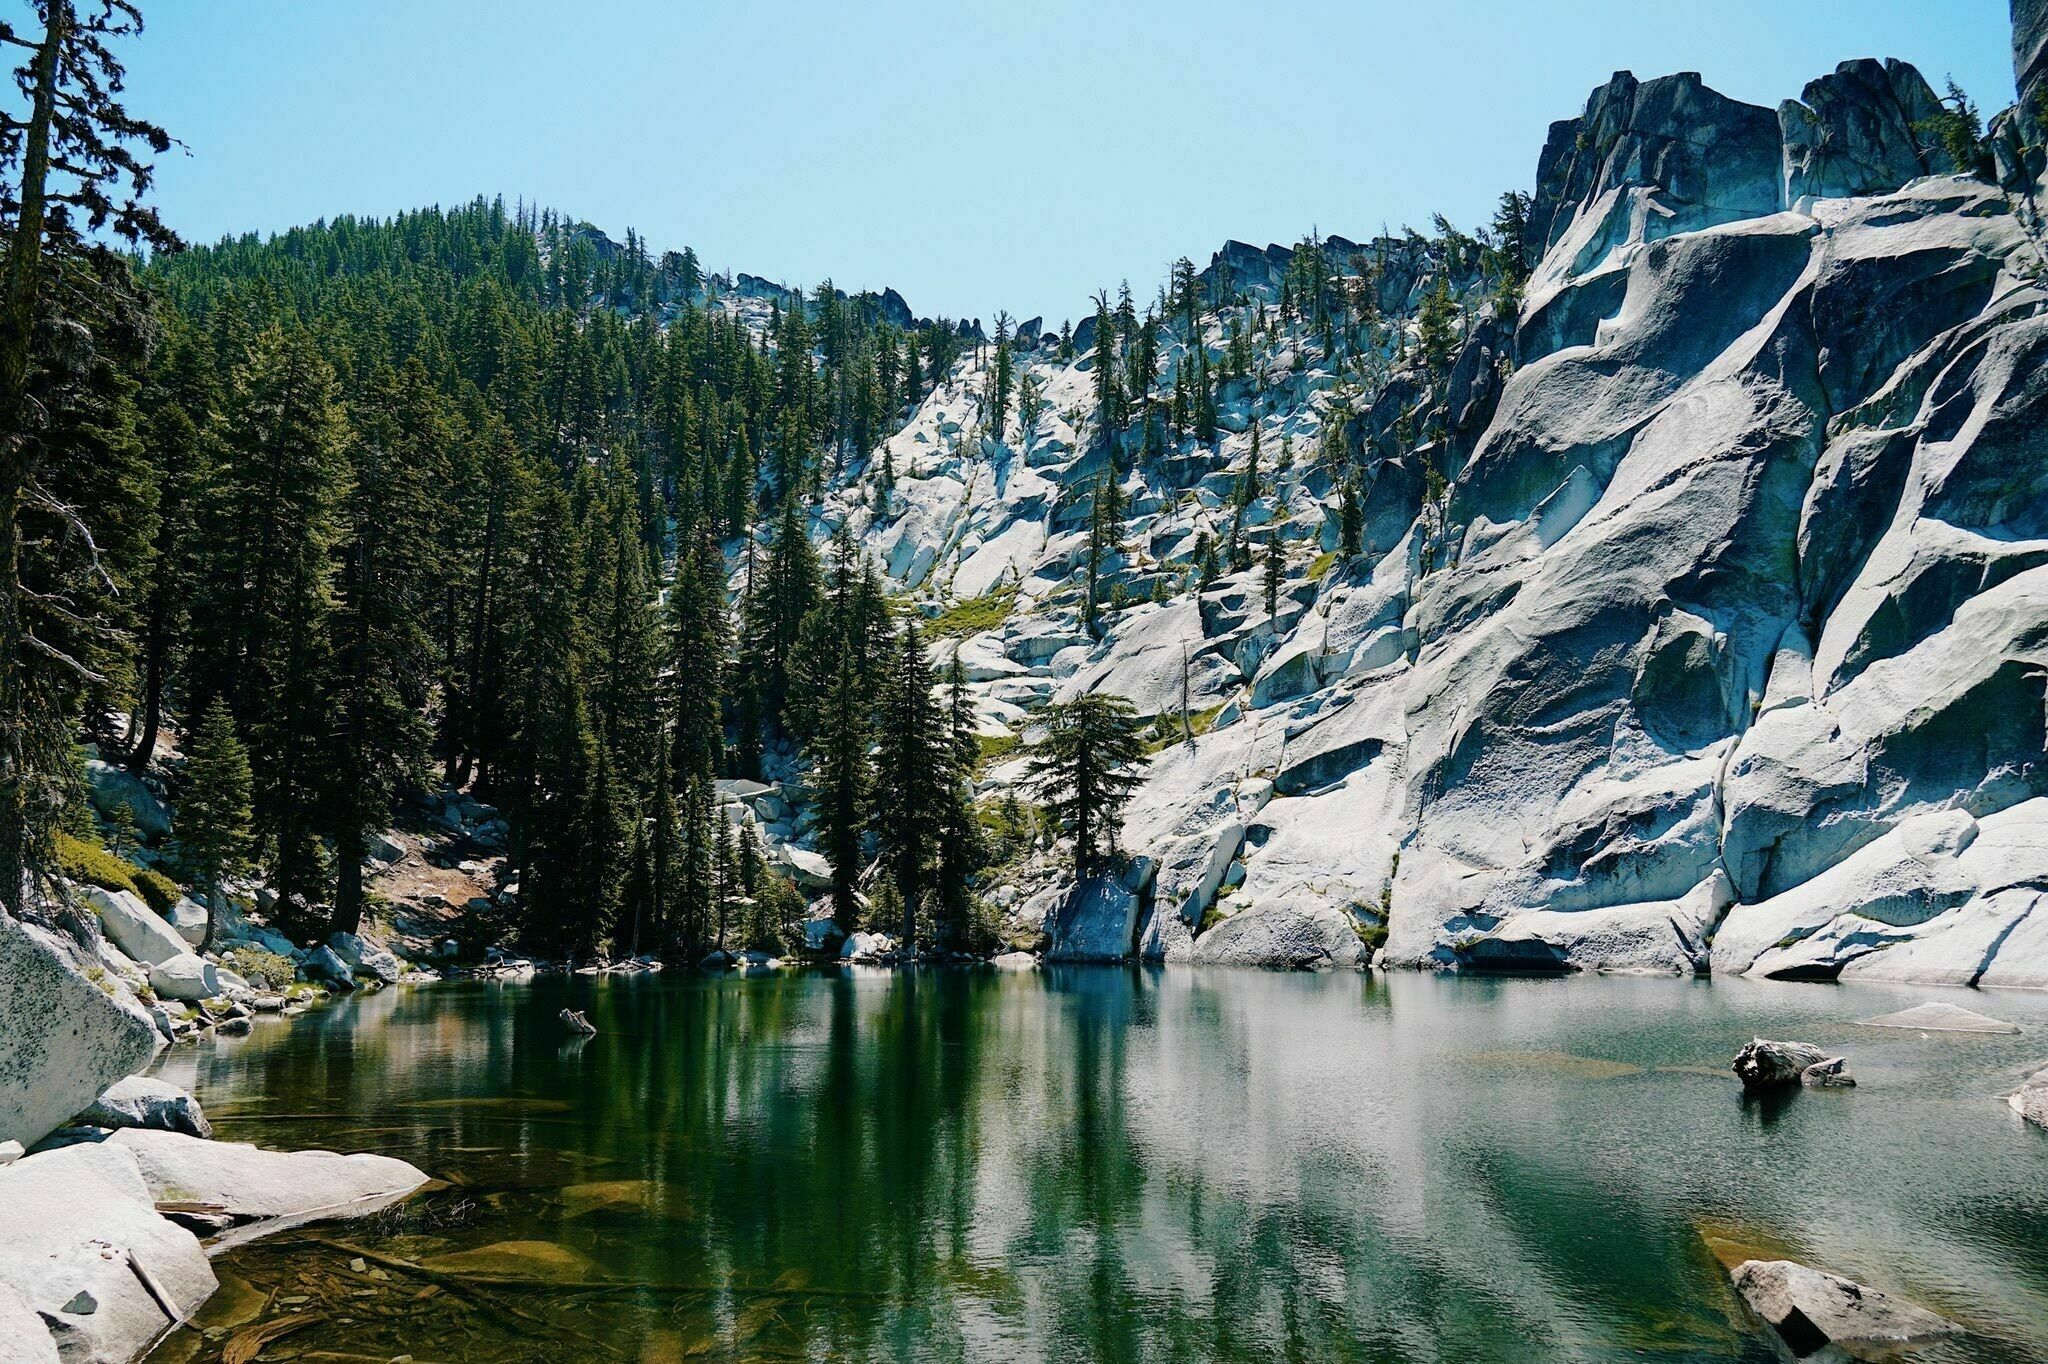 Surrounded By Otherworldly Rock Formations, Statue Lake Is A Rare Wonder In Northern California